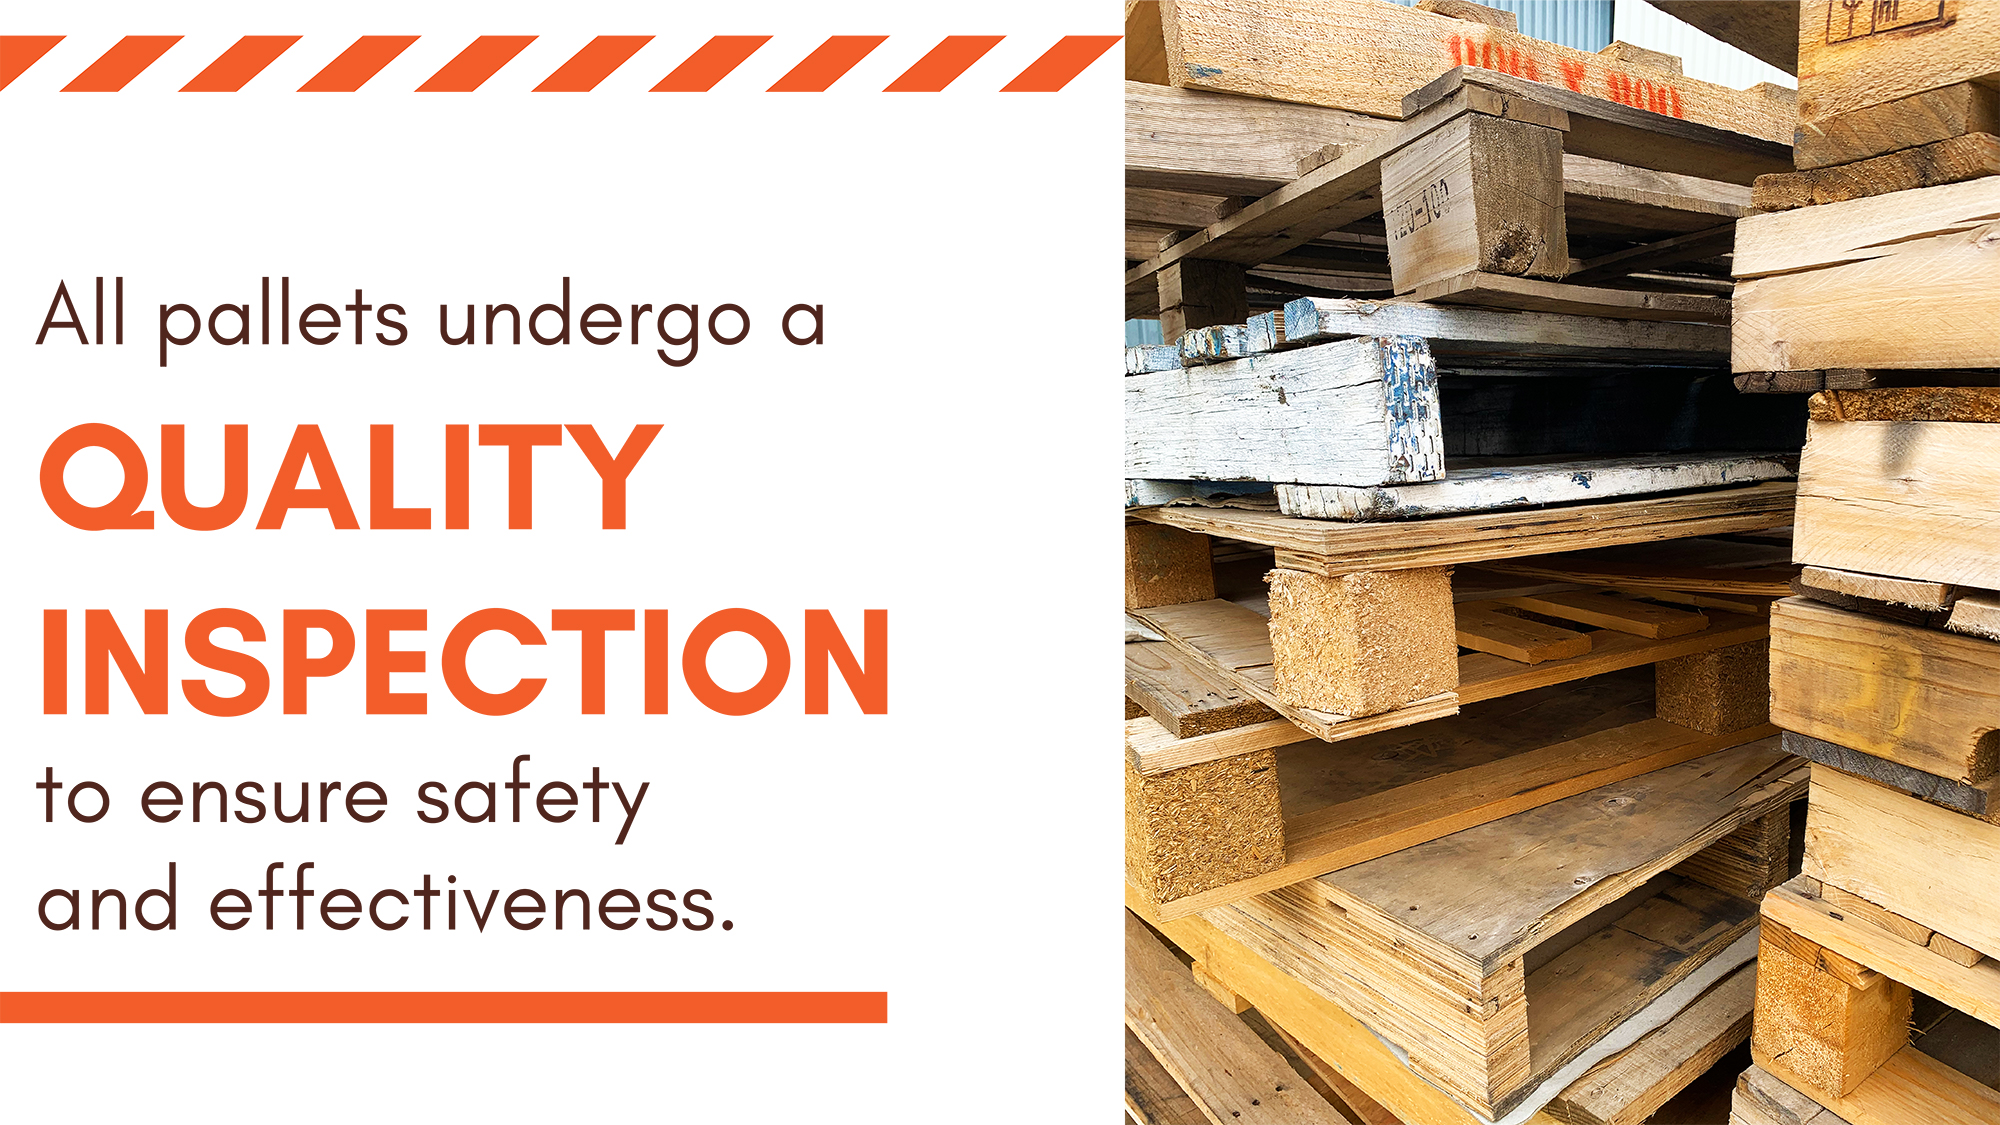 All pallets undergo a quality inspection to ensure safety and effectiveness.